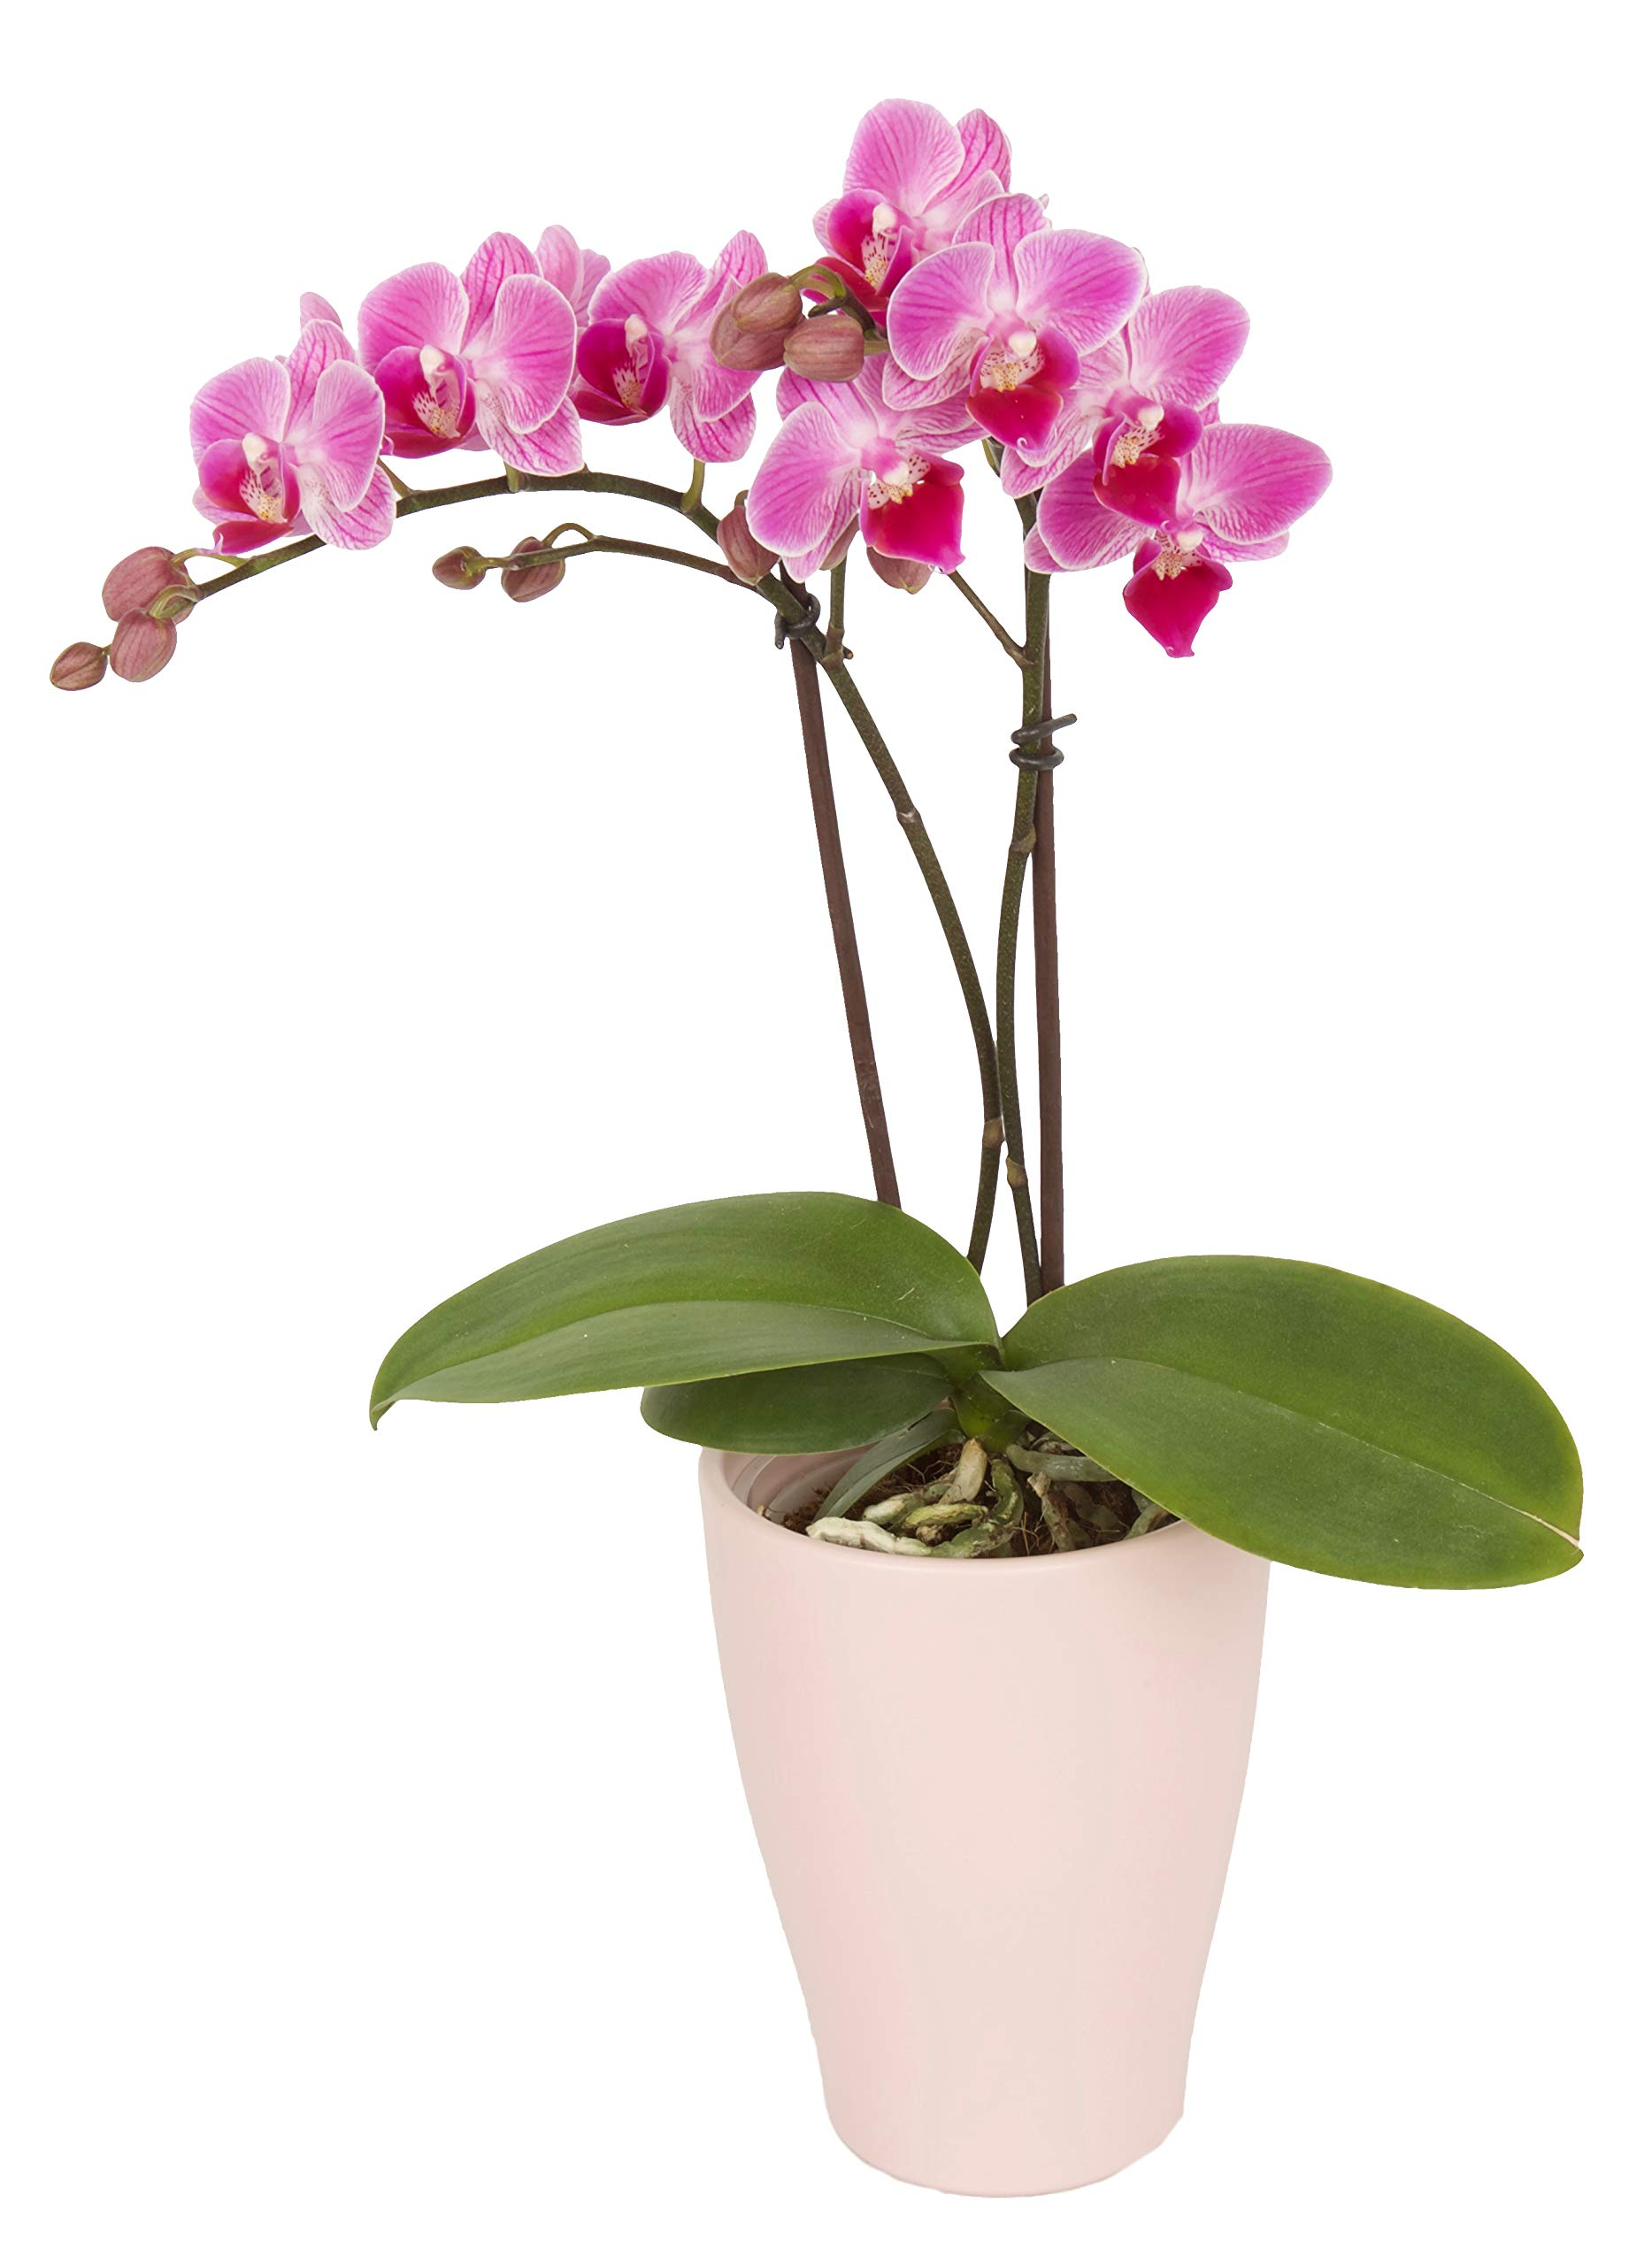 Color Orchids Live Blooming Double Stem Phalaenopsis Orchid Plant in Ceramic Pot, 15''-20'' Tall, Pink Blooms